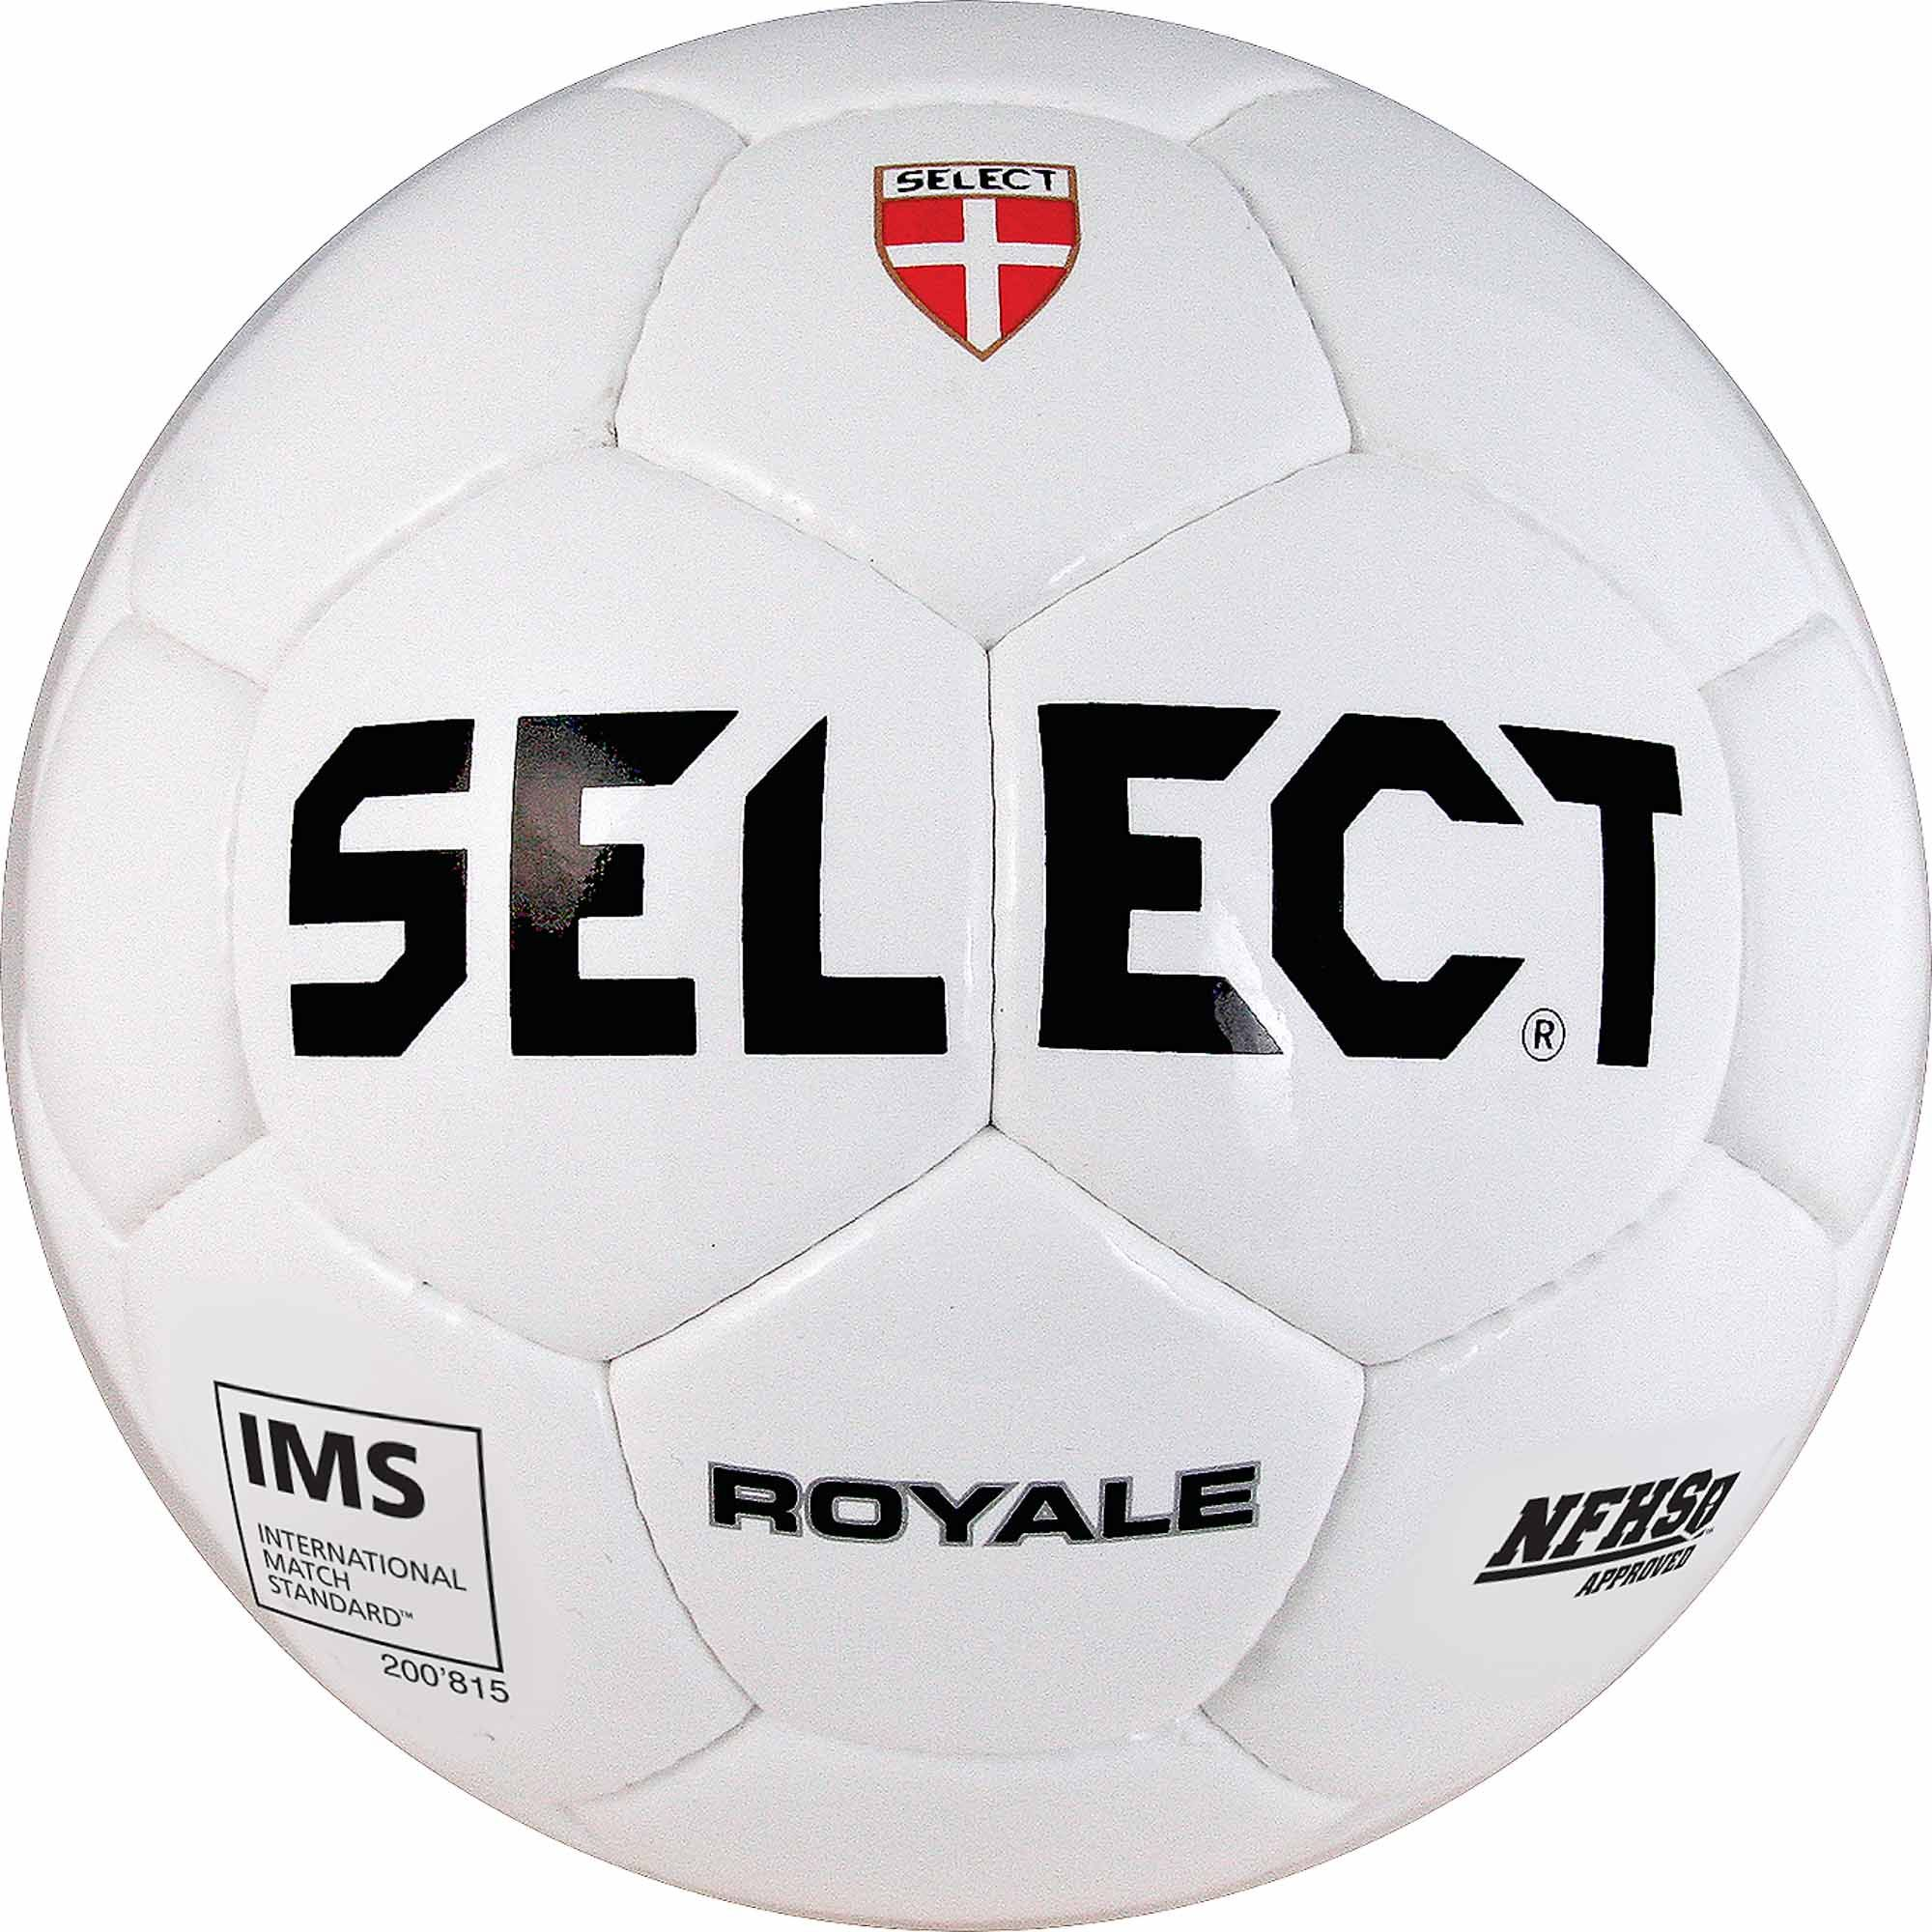 4b96c6766 Select Royale NFHS Match Soccer Ball. Buy it from SoccerPro.